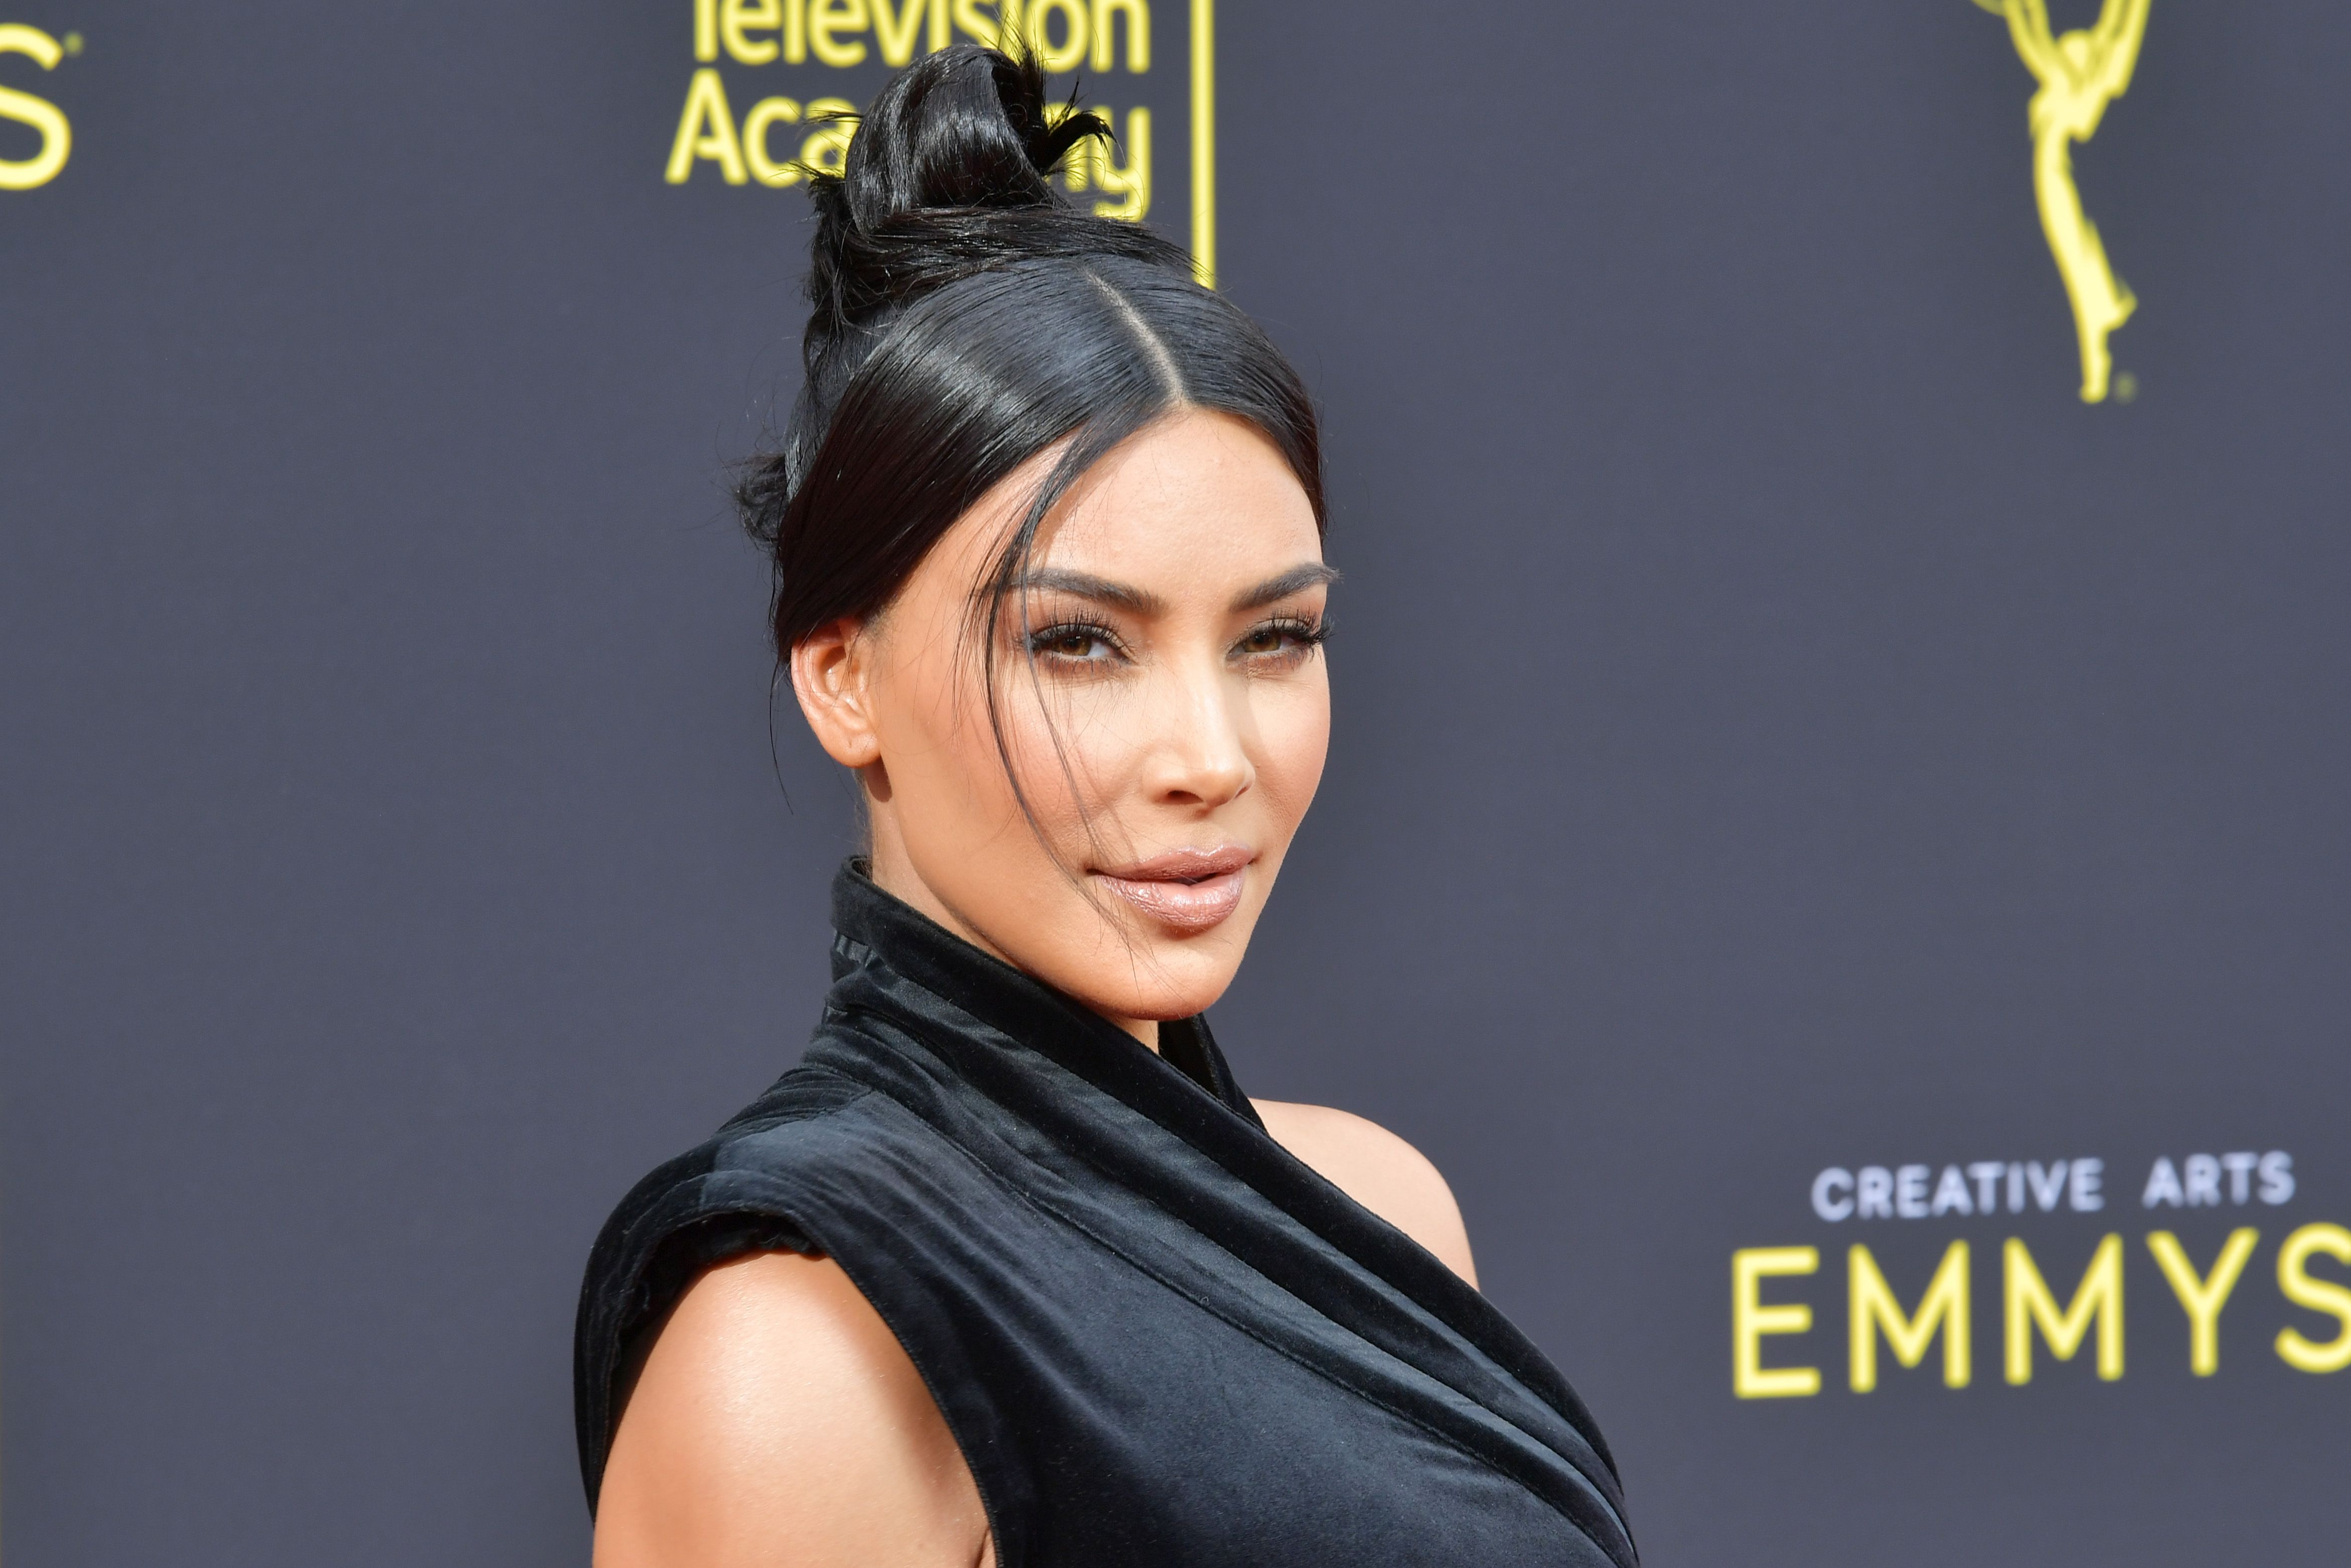 Kim Kardashian opens up about her struggle with psoriasis and arthritis